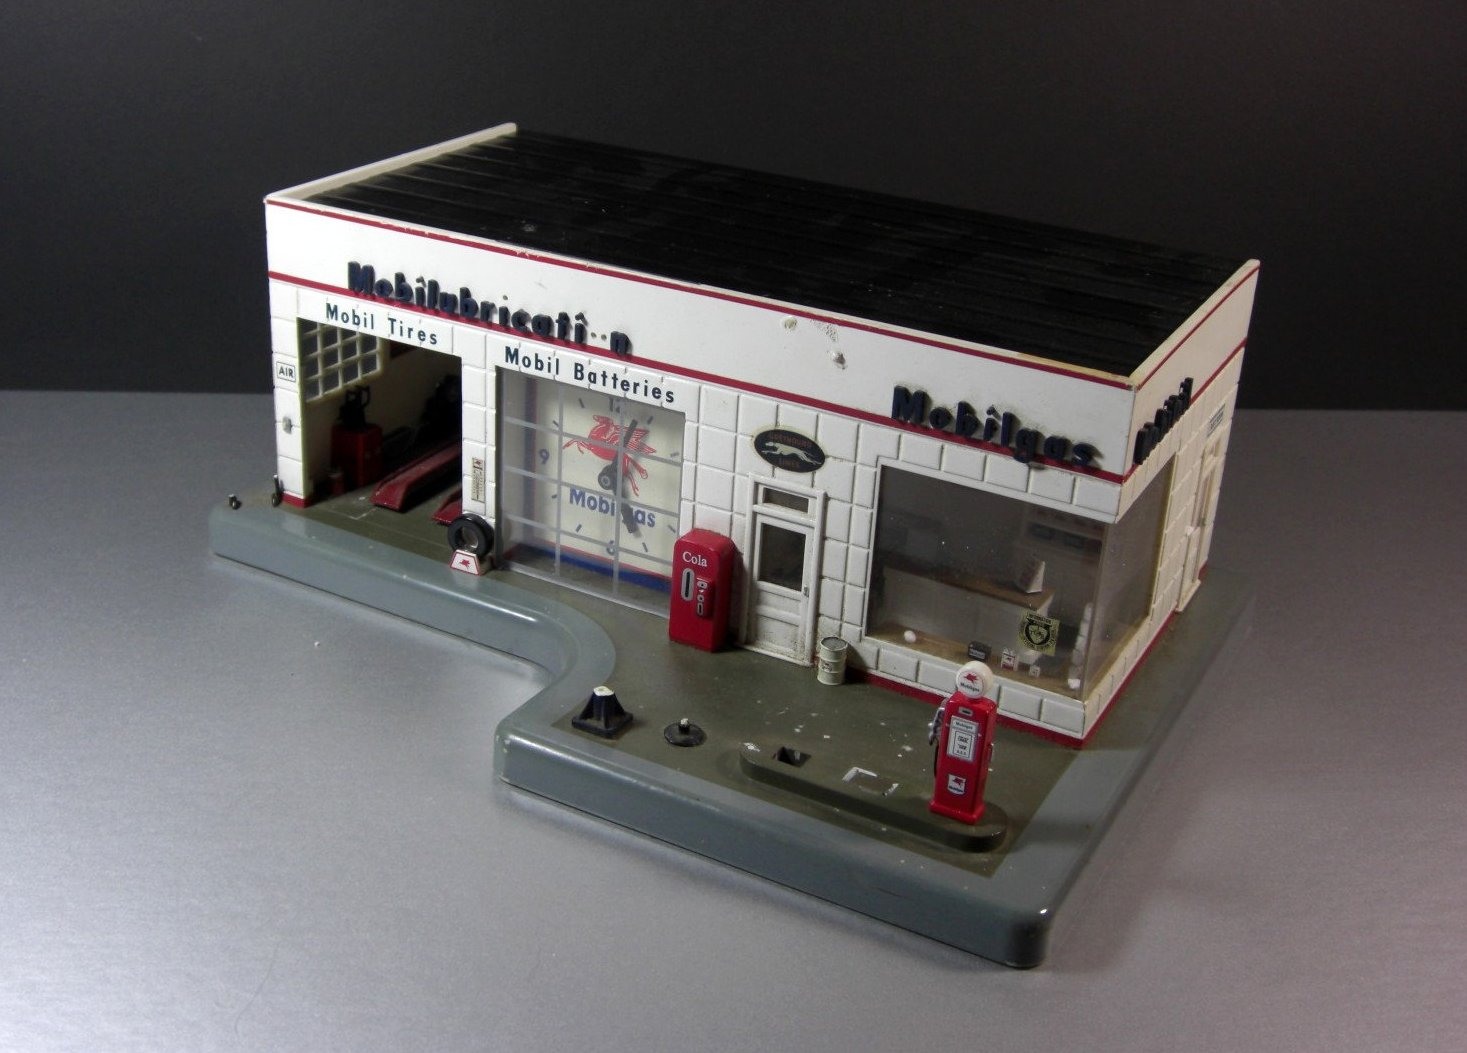 Mobil Gas Mobilgas Station Diorama Model / 64th Scale / for Parts Salvage Upcycl